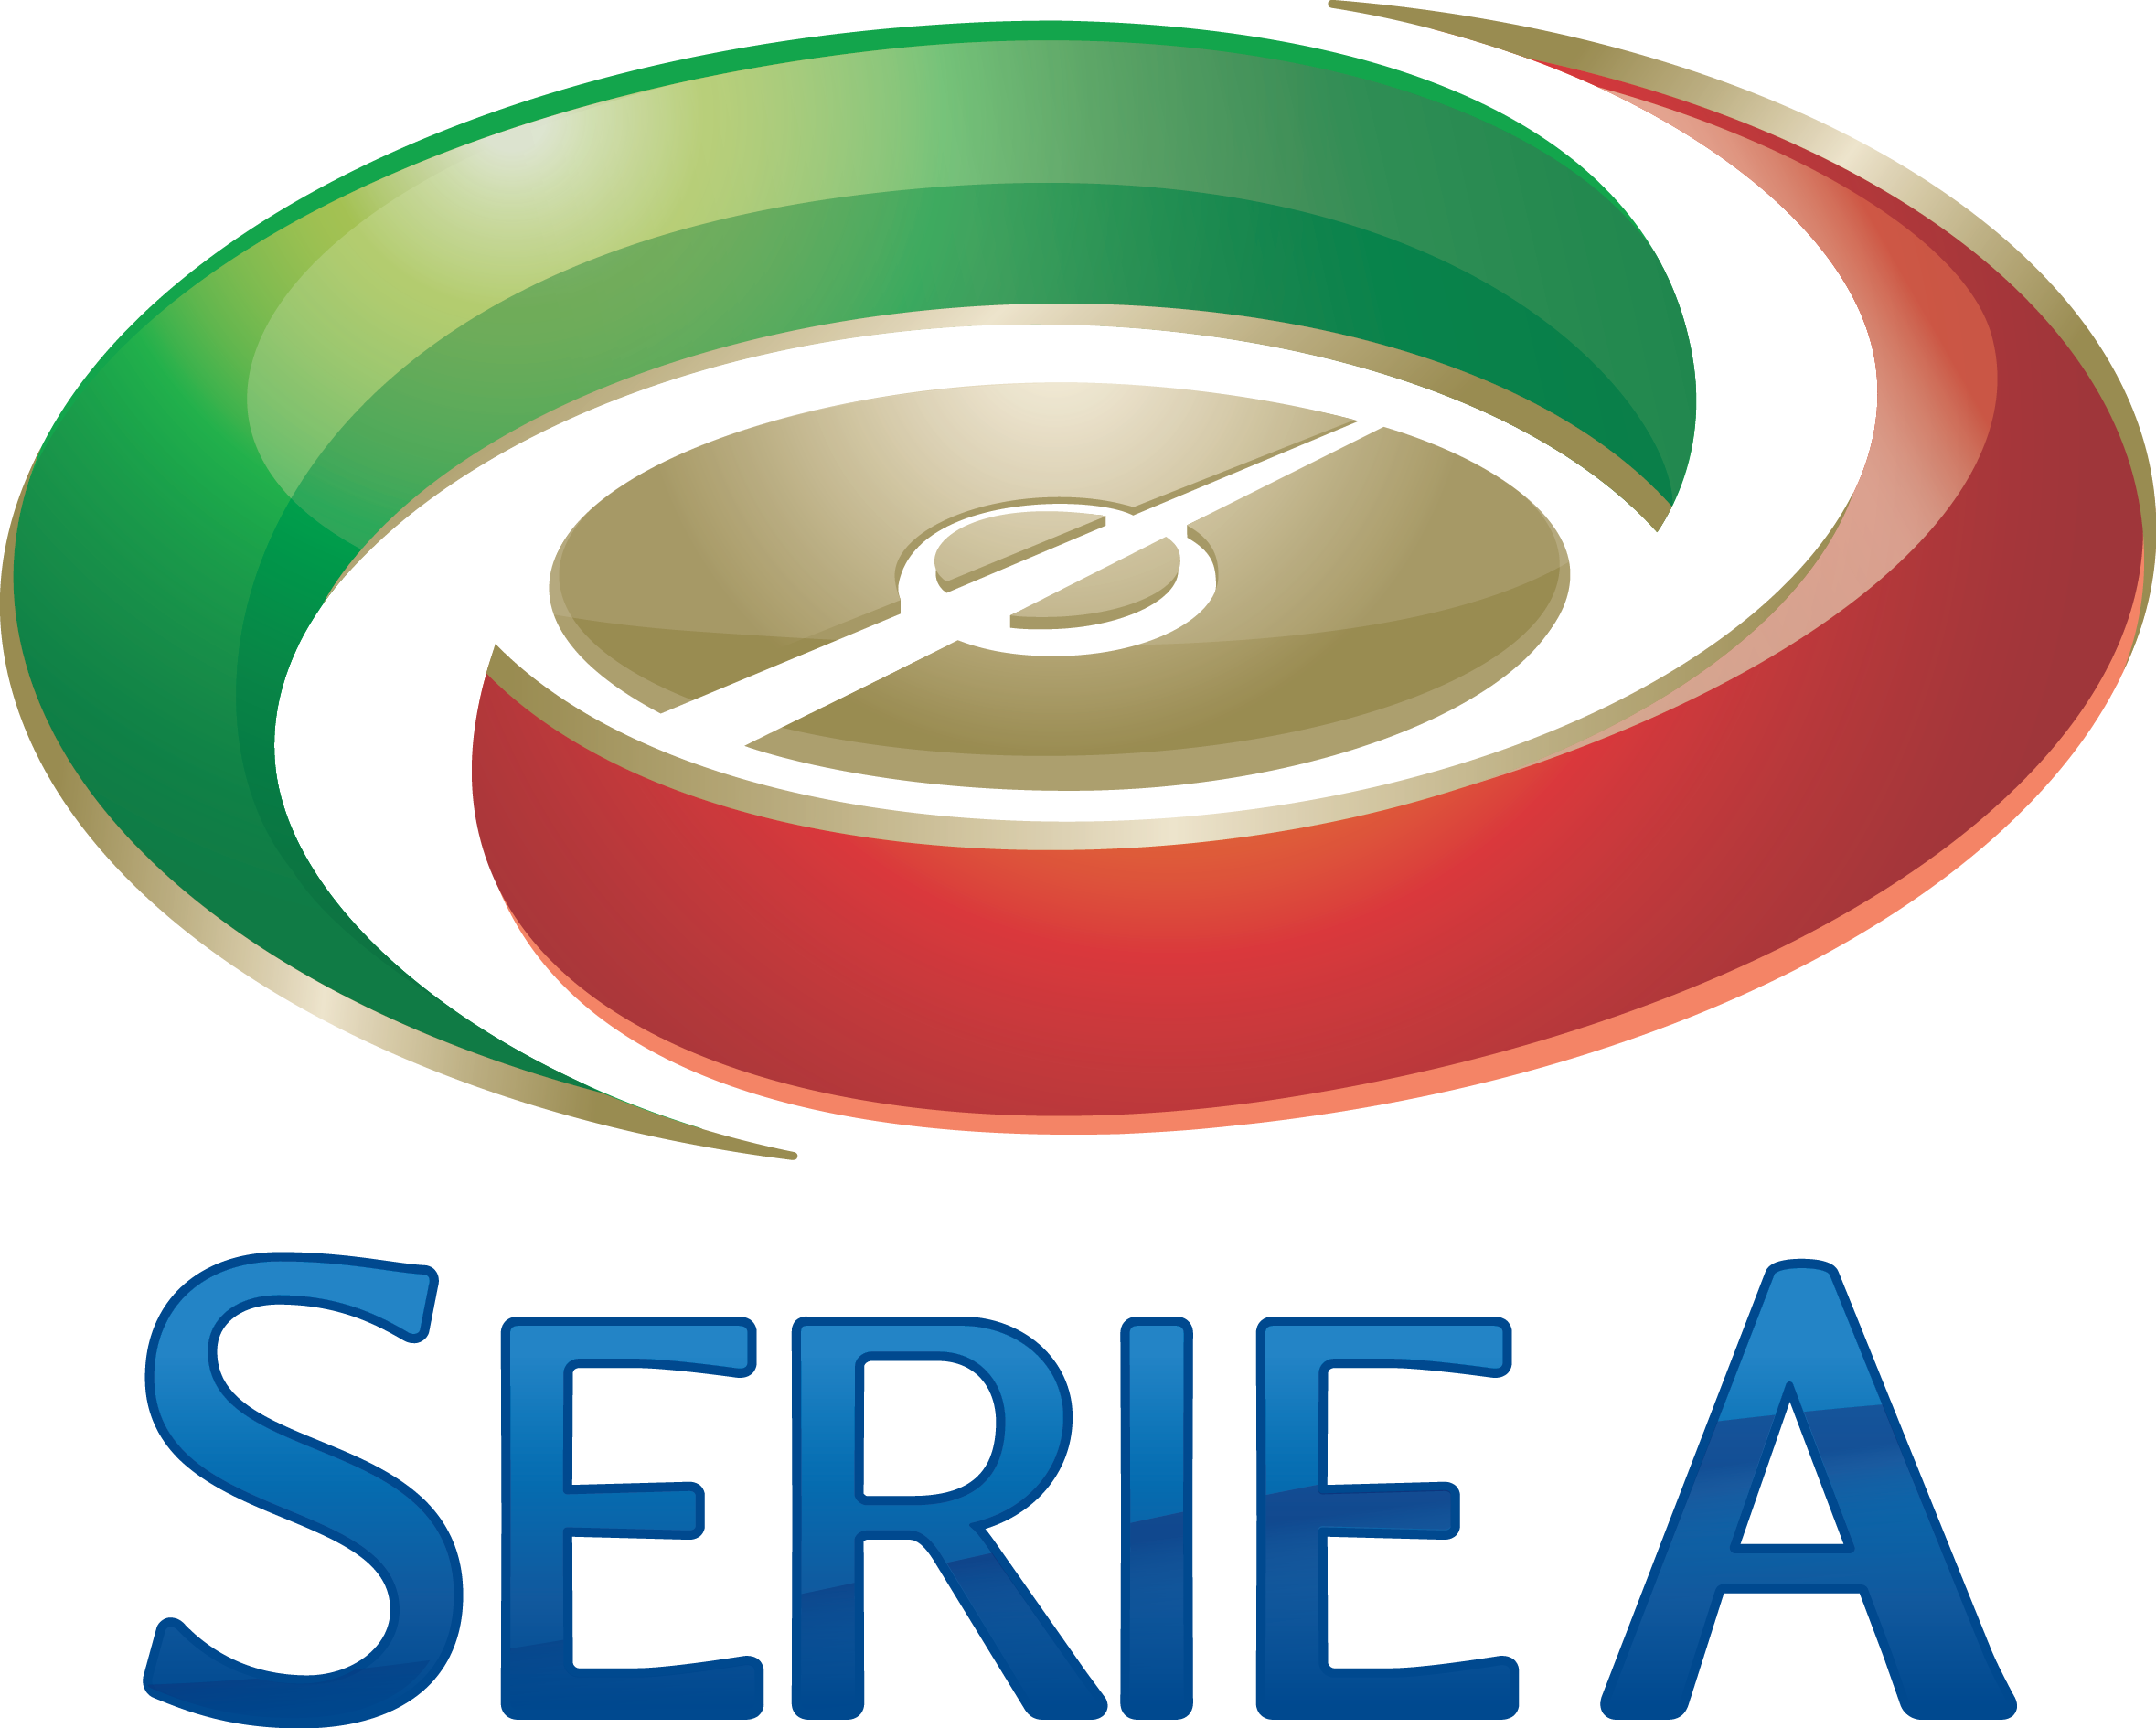 Genoa vs Torino 5-1 All goals and highlights 11/05/2015